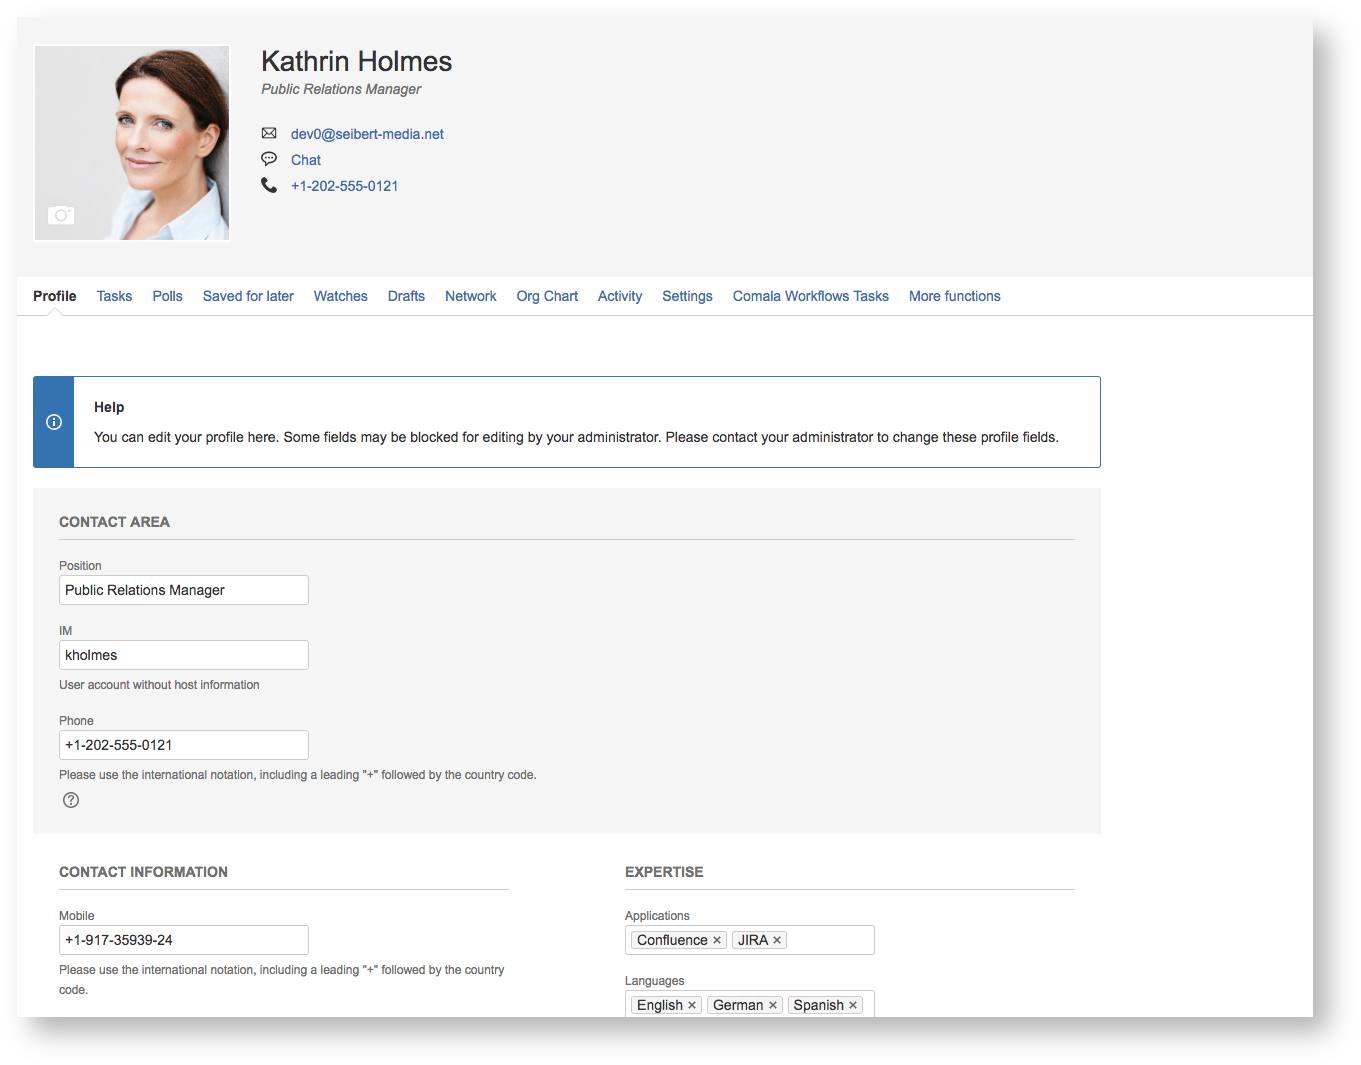 View of the user profile